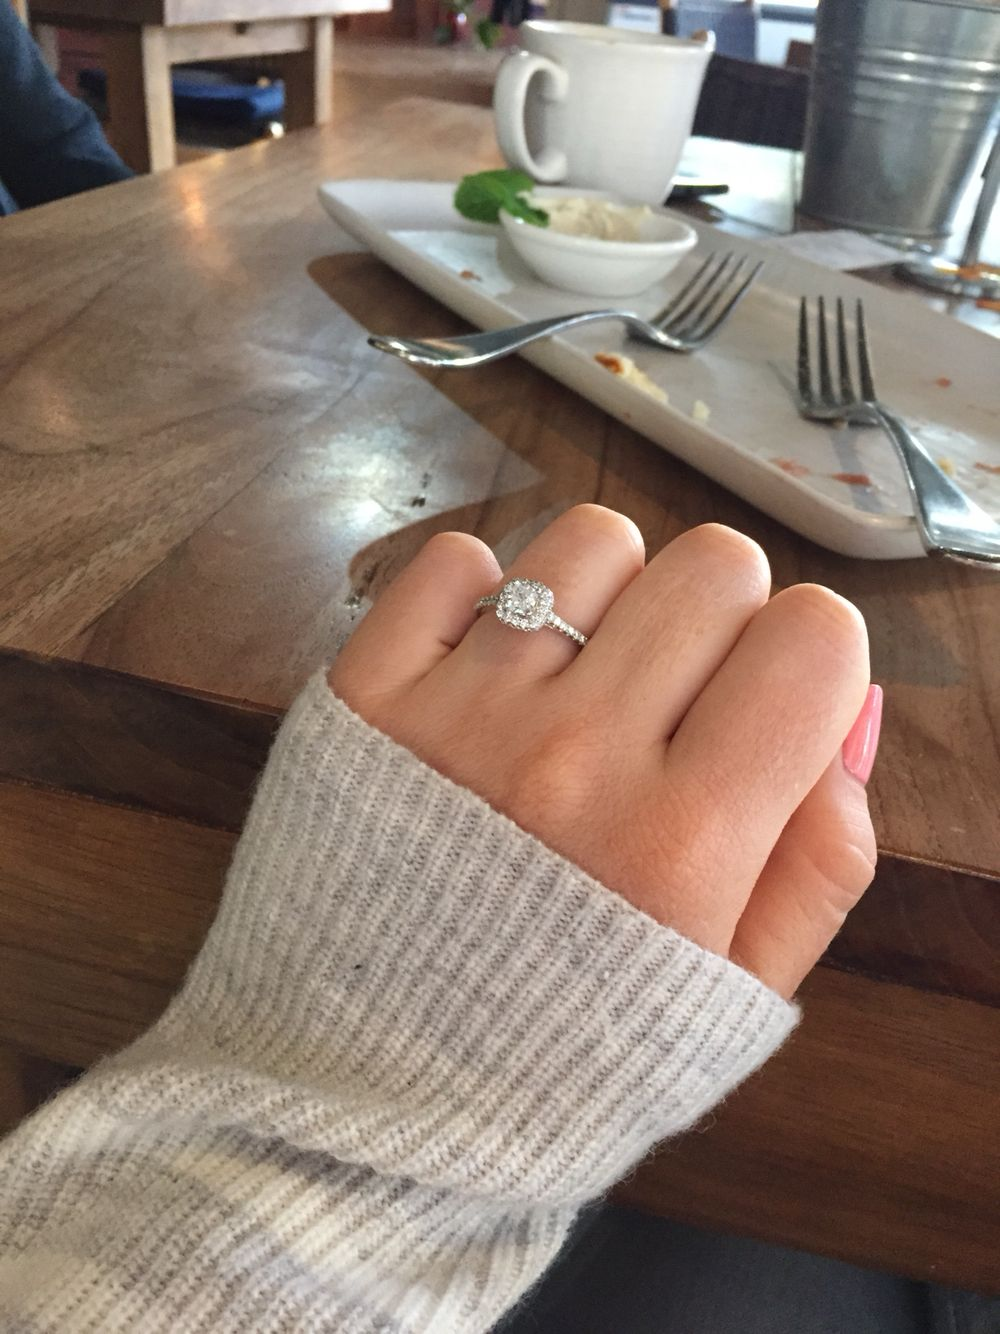 Rings For Women 2238 New Diamond Pendant Price Earrings Design 2019 Wooden Fashion Jewelry Ladies Ring